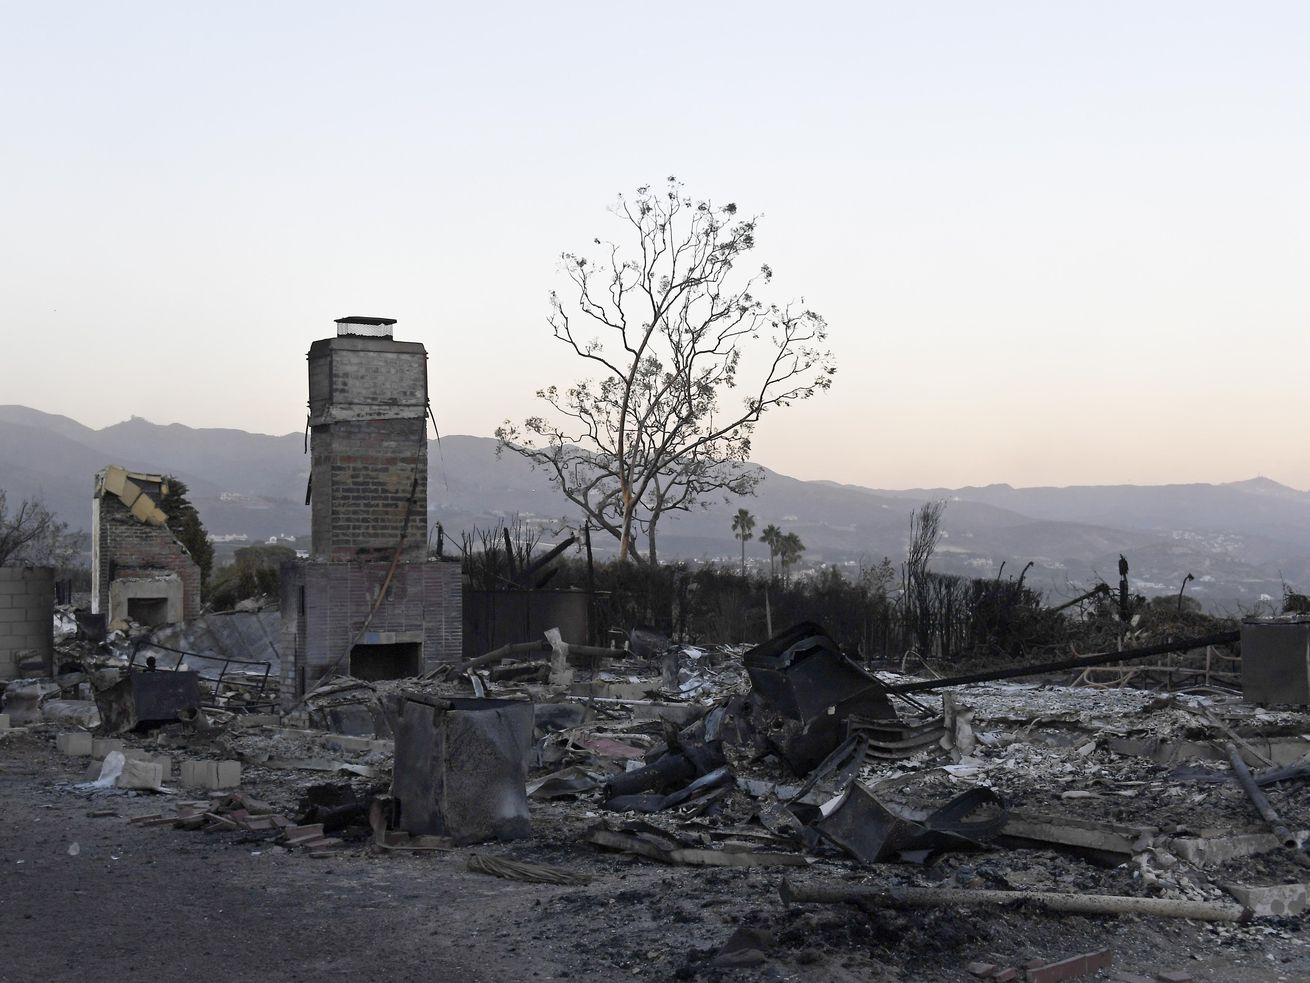 Destroyed houses are seen with the Santa Monica Mountains in the background on Monday in Malibu.